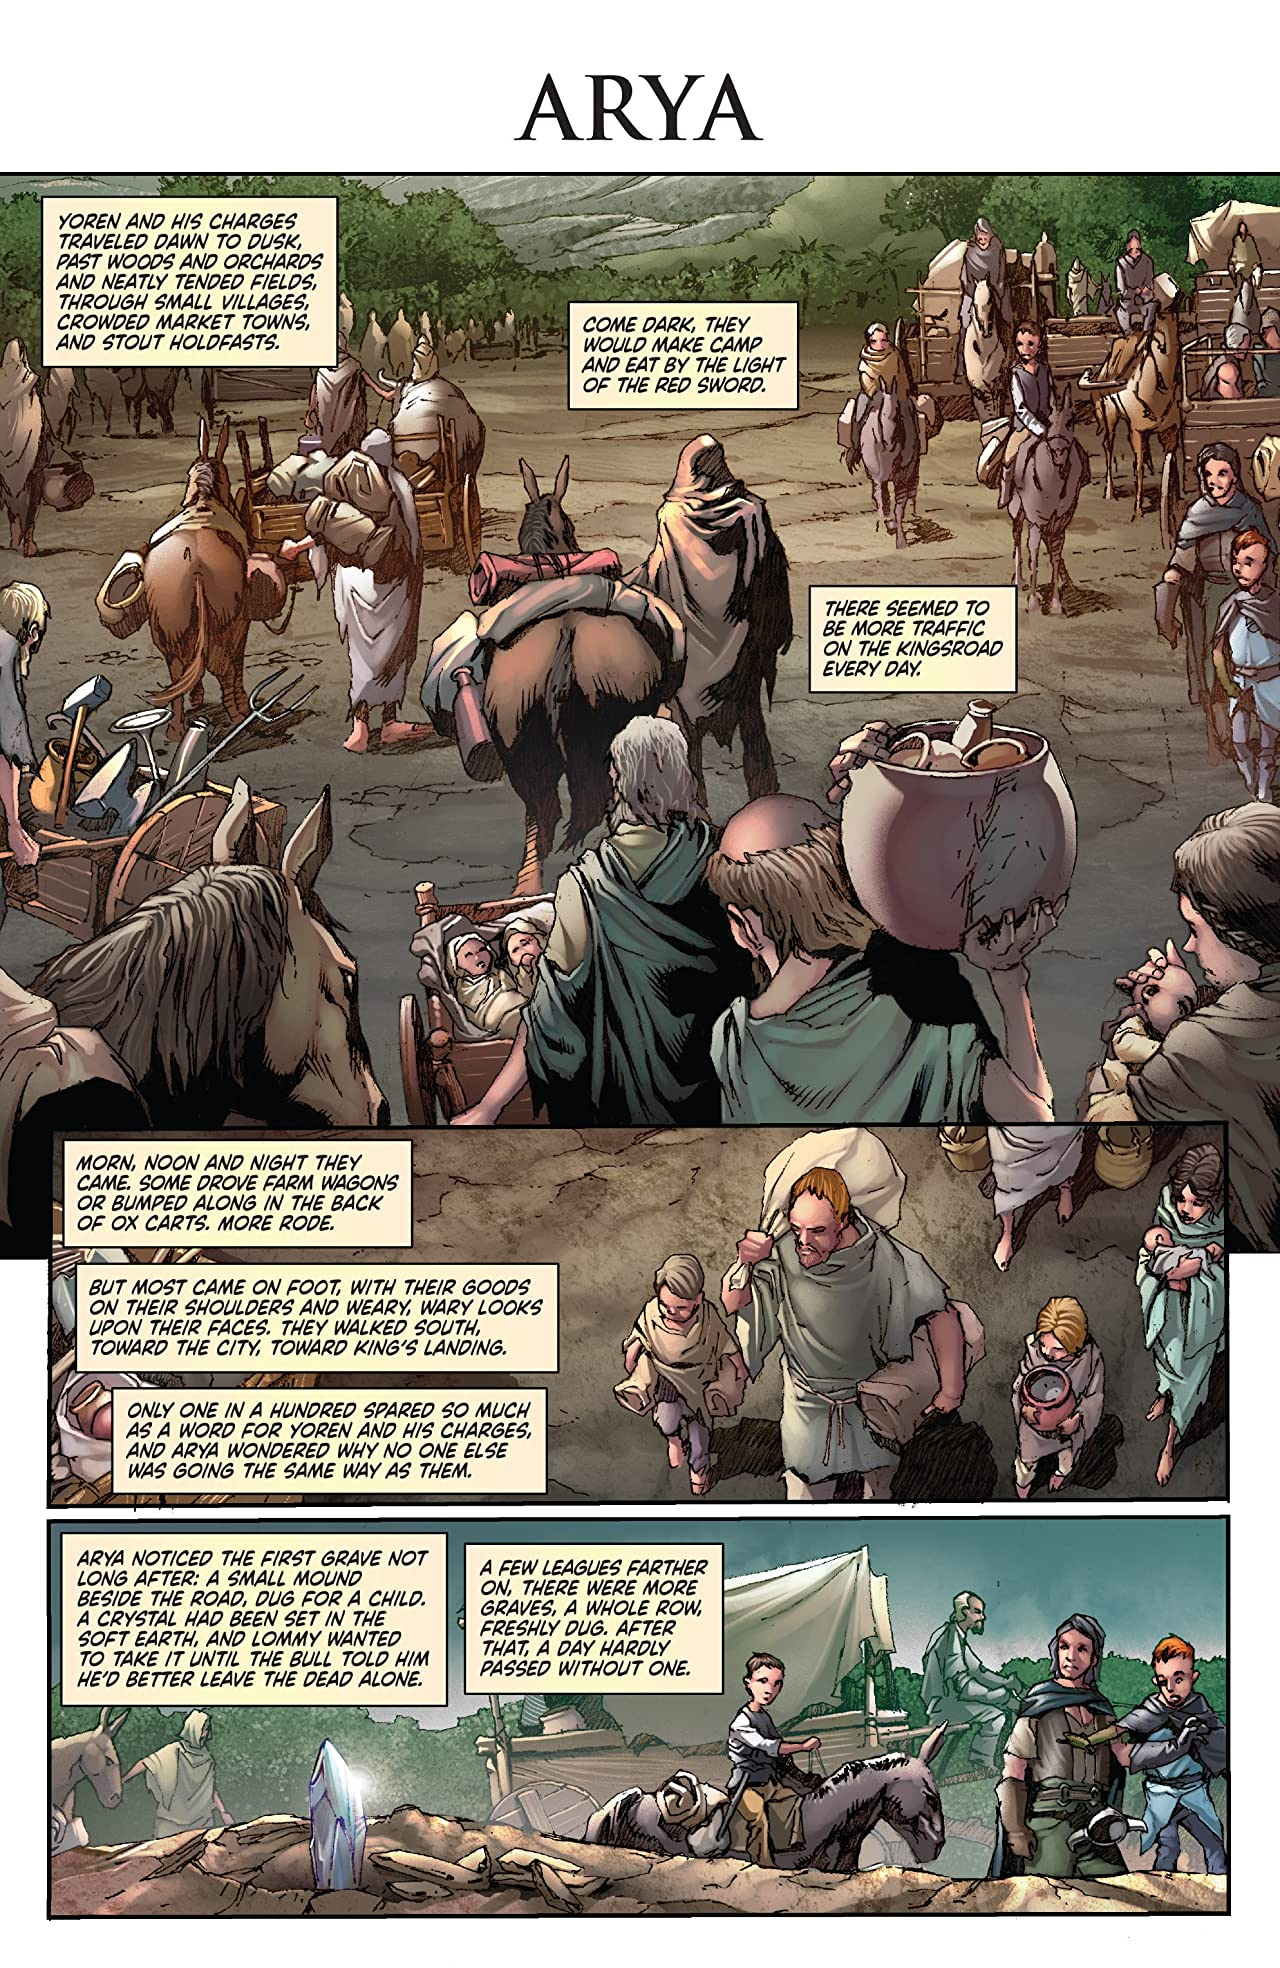 George R.R. Martin's A Clash Of Kings: The Comic Book No.4